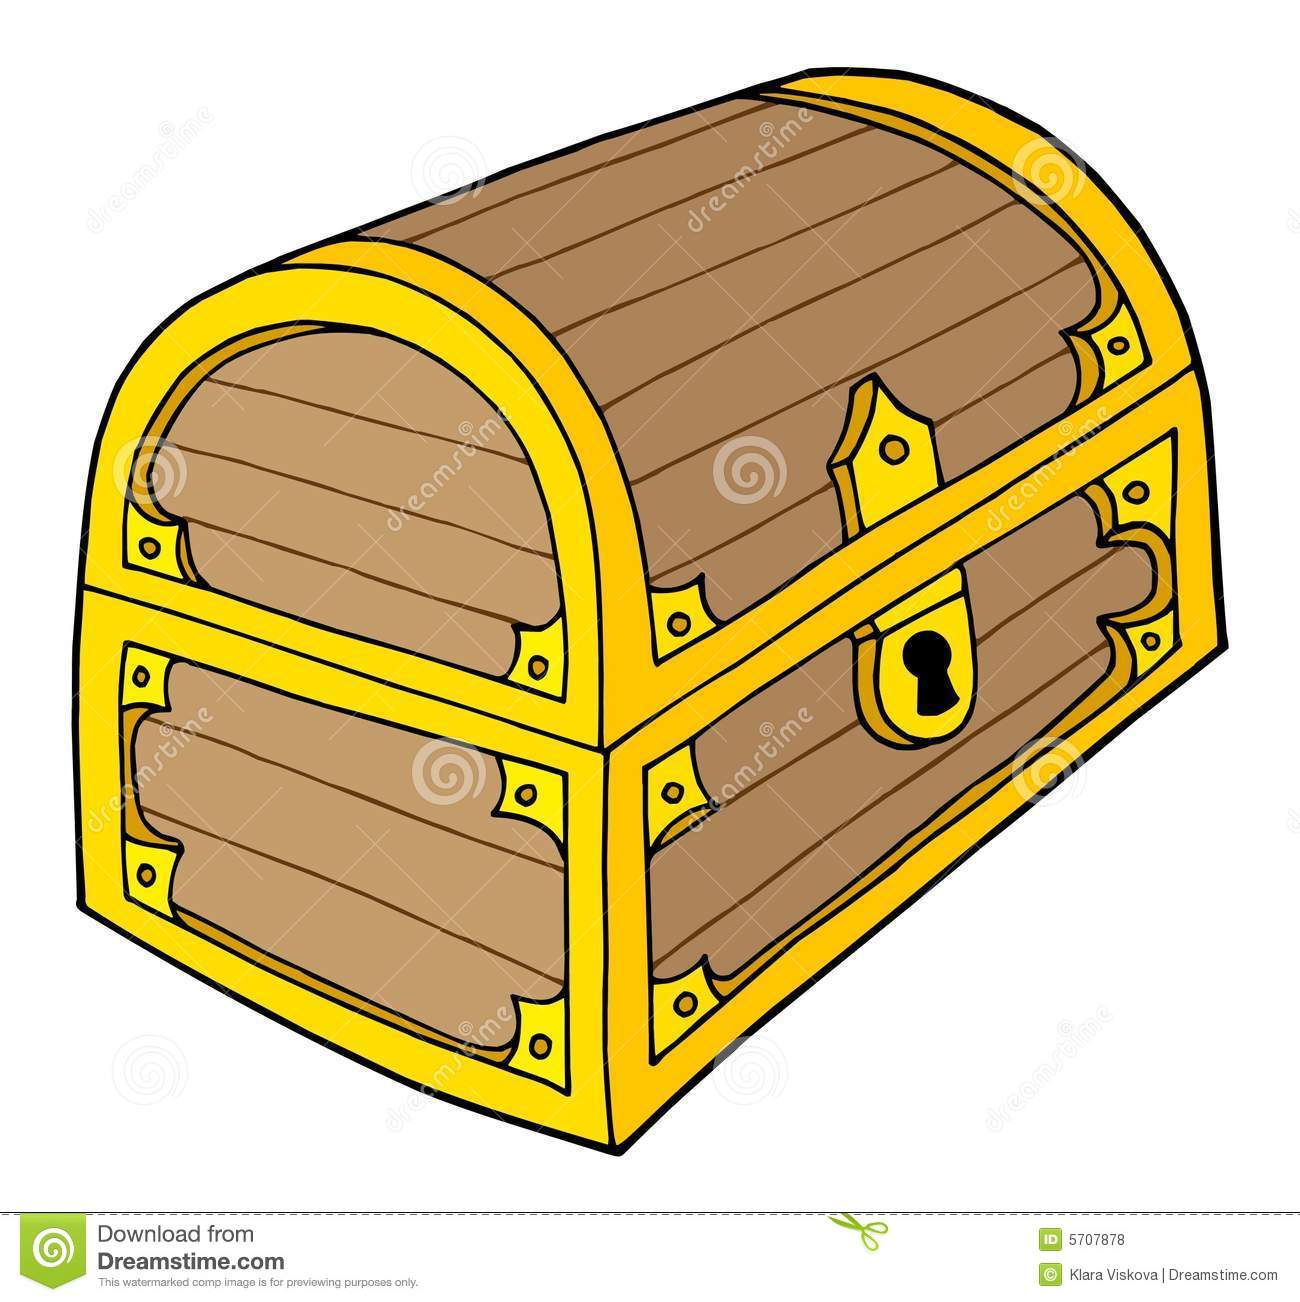 skrzynia skarb u00f3w  wektor ilustracyjny zdj u0119cia royalty free Treasure Chest Clip Art free treasure chest clipart